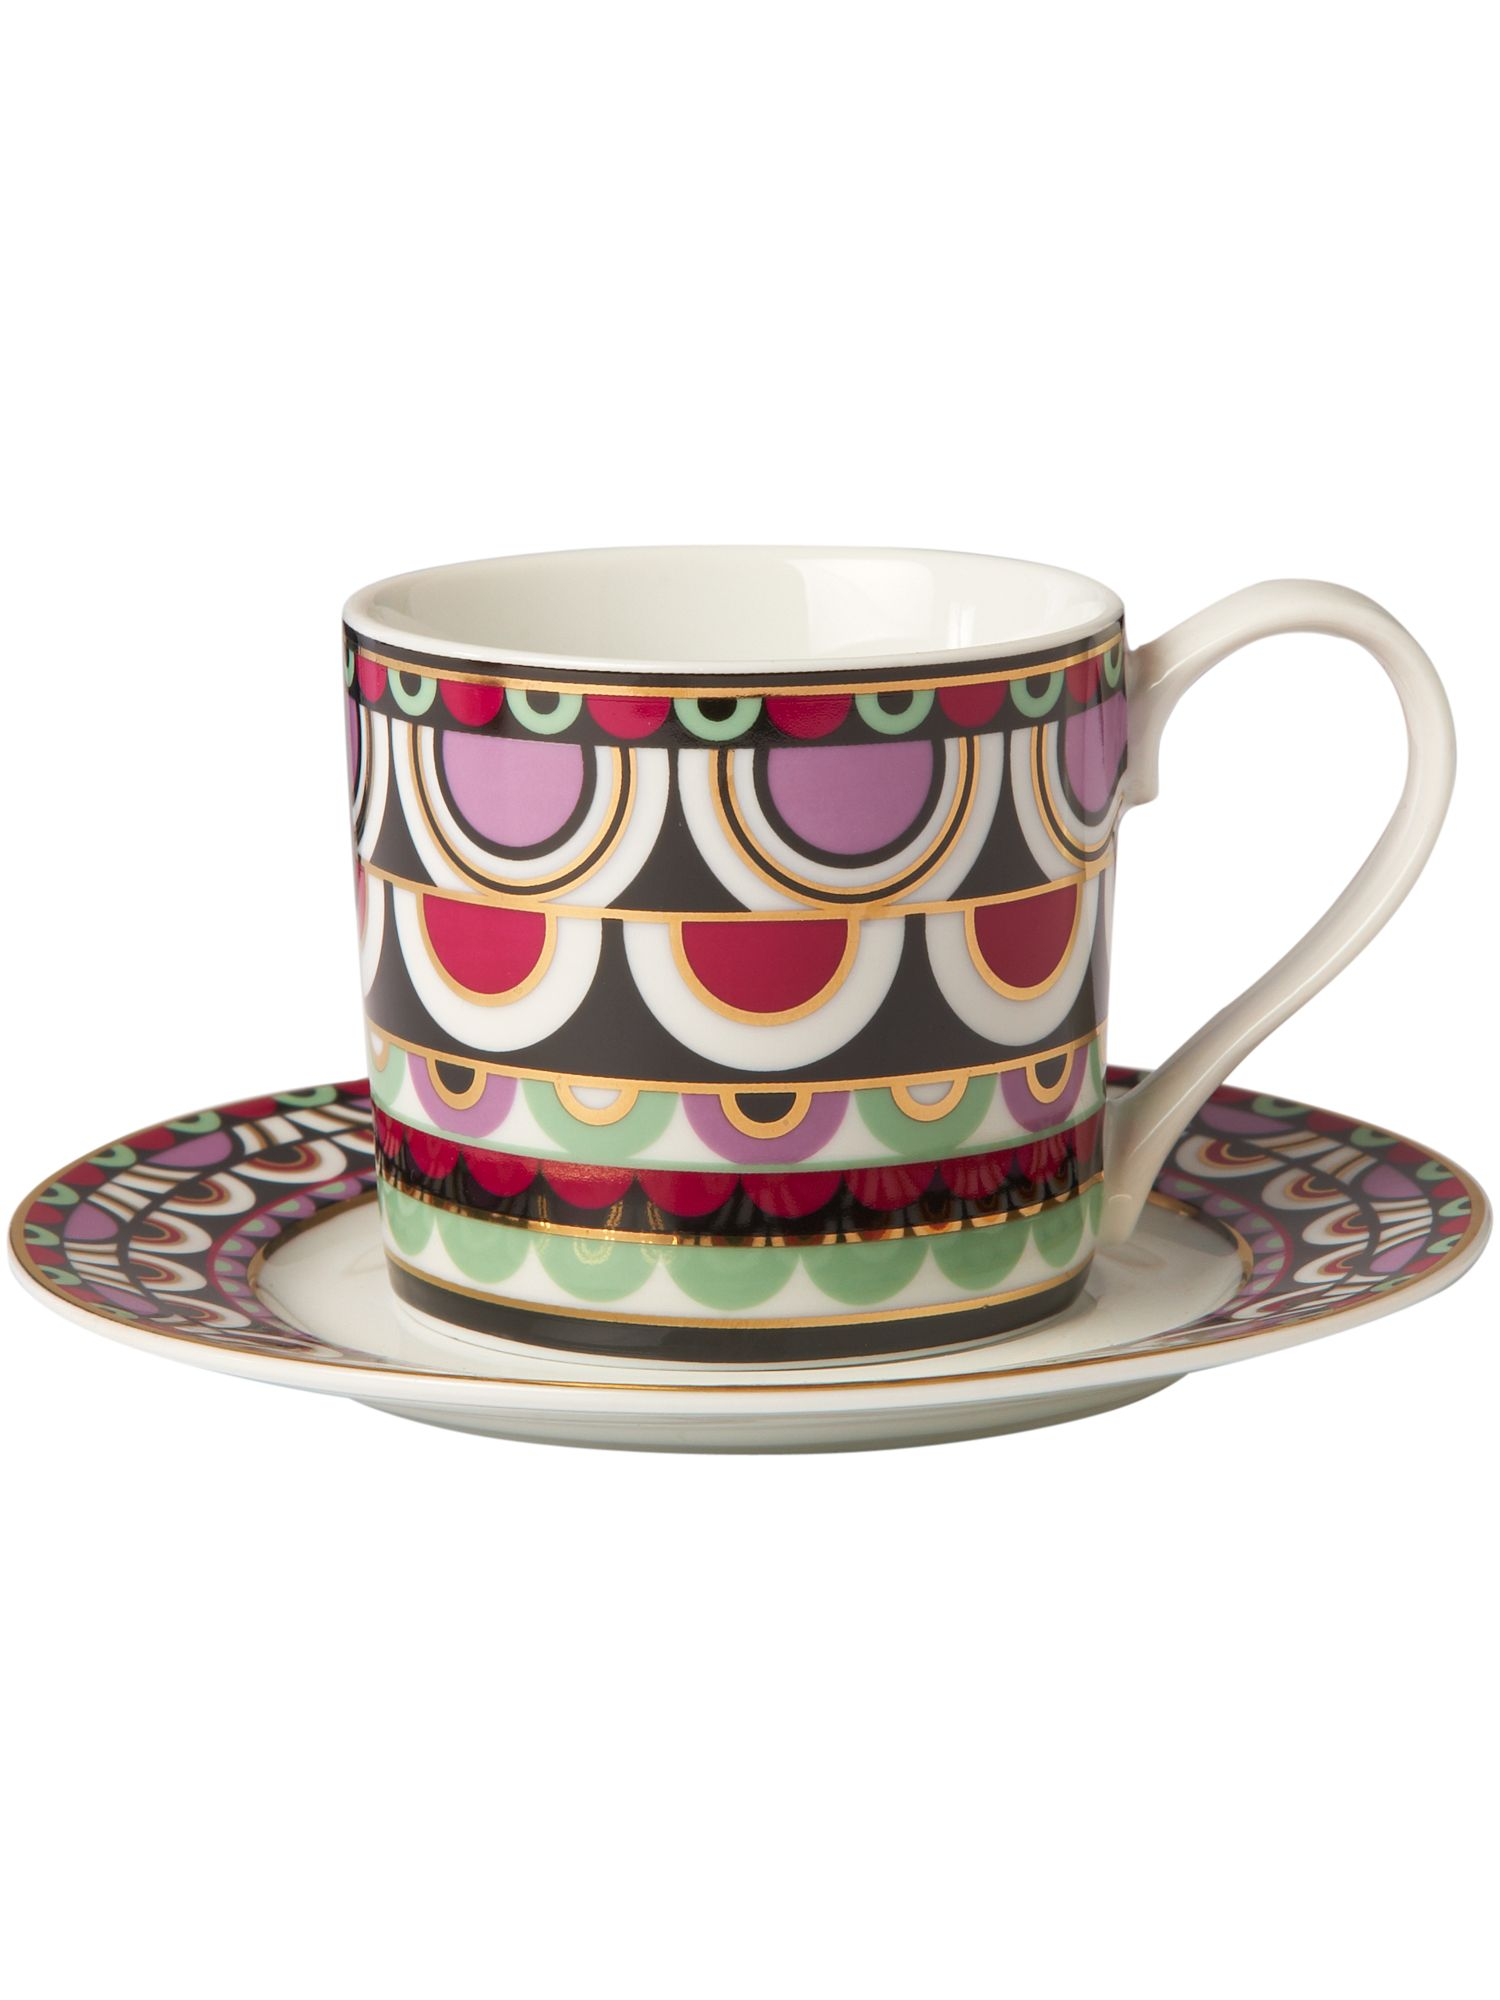 selectedColor  sc 1 st  House of Fraser & Pied a Terre Persia Jewels Cup And Saucer - House of Fraser